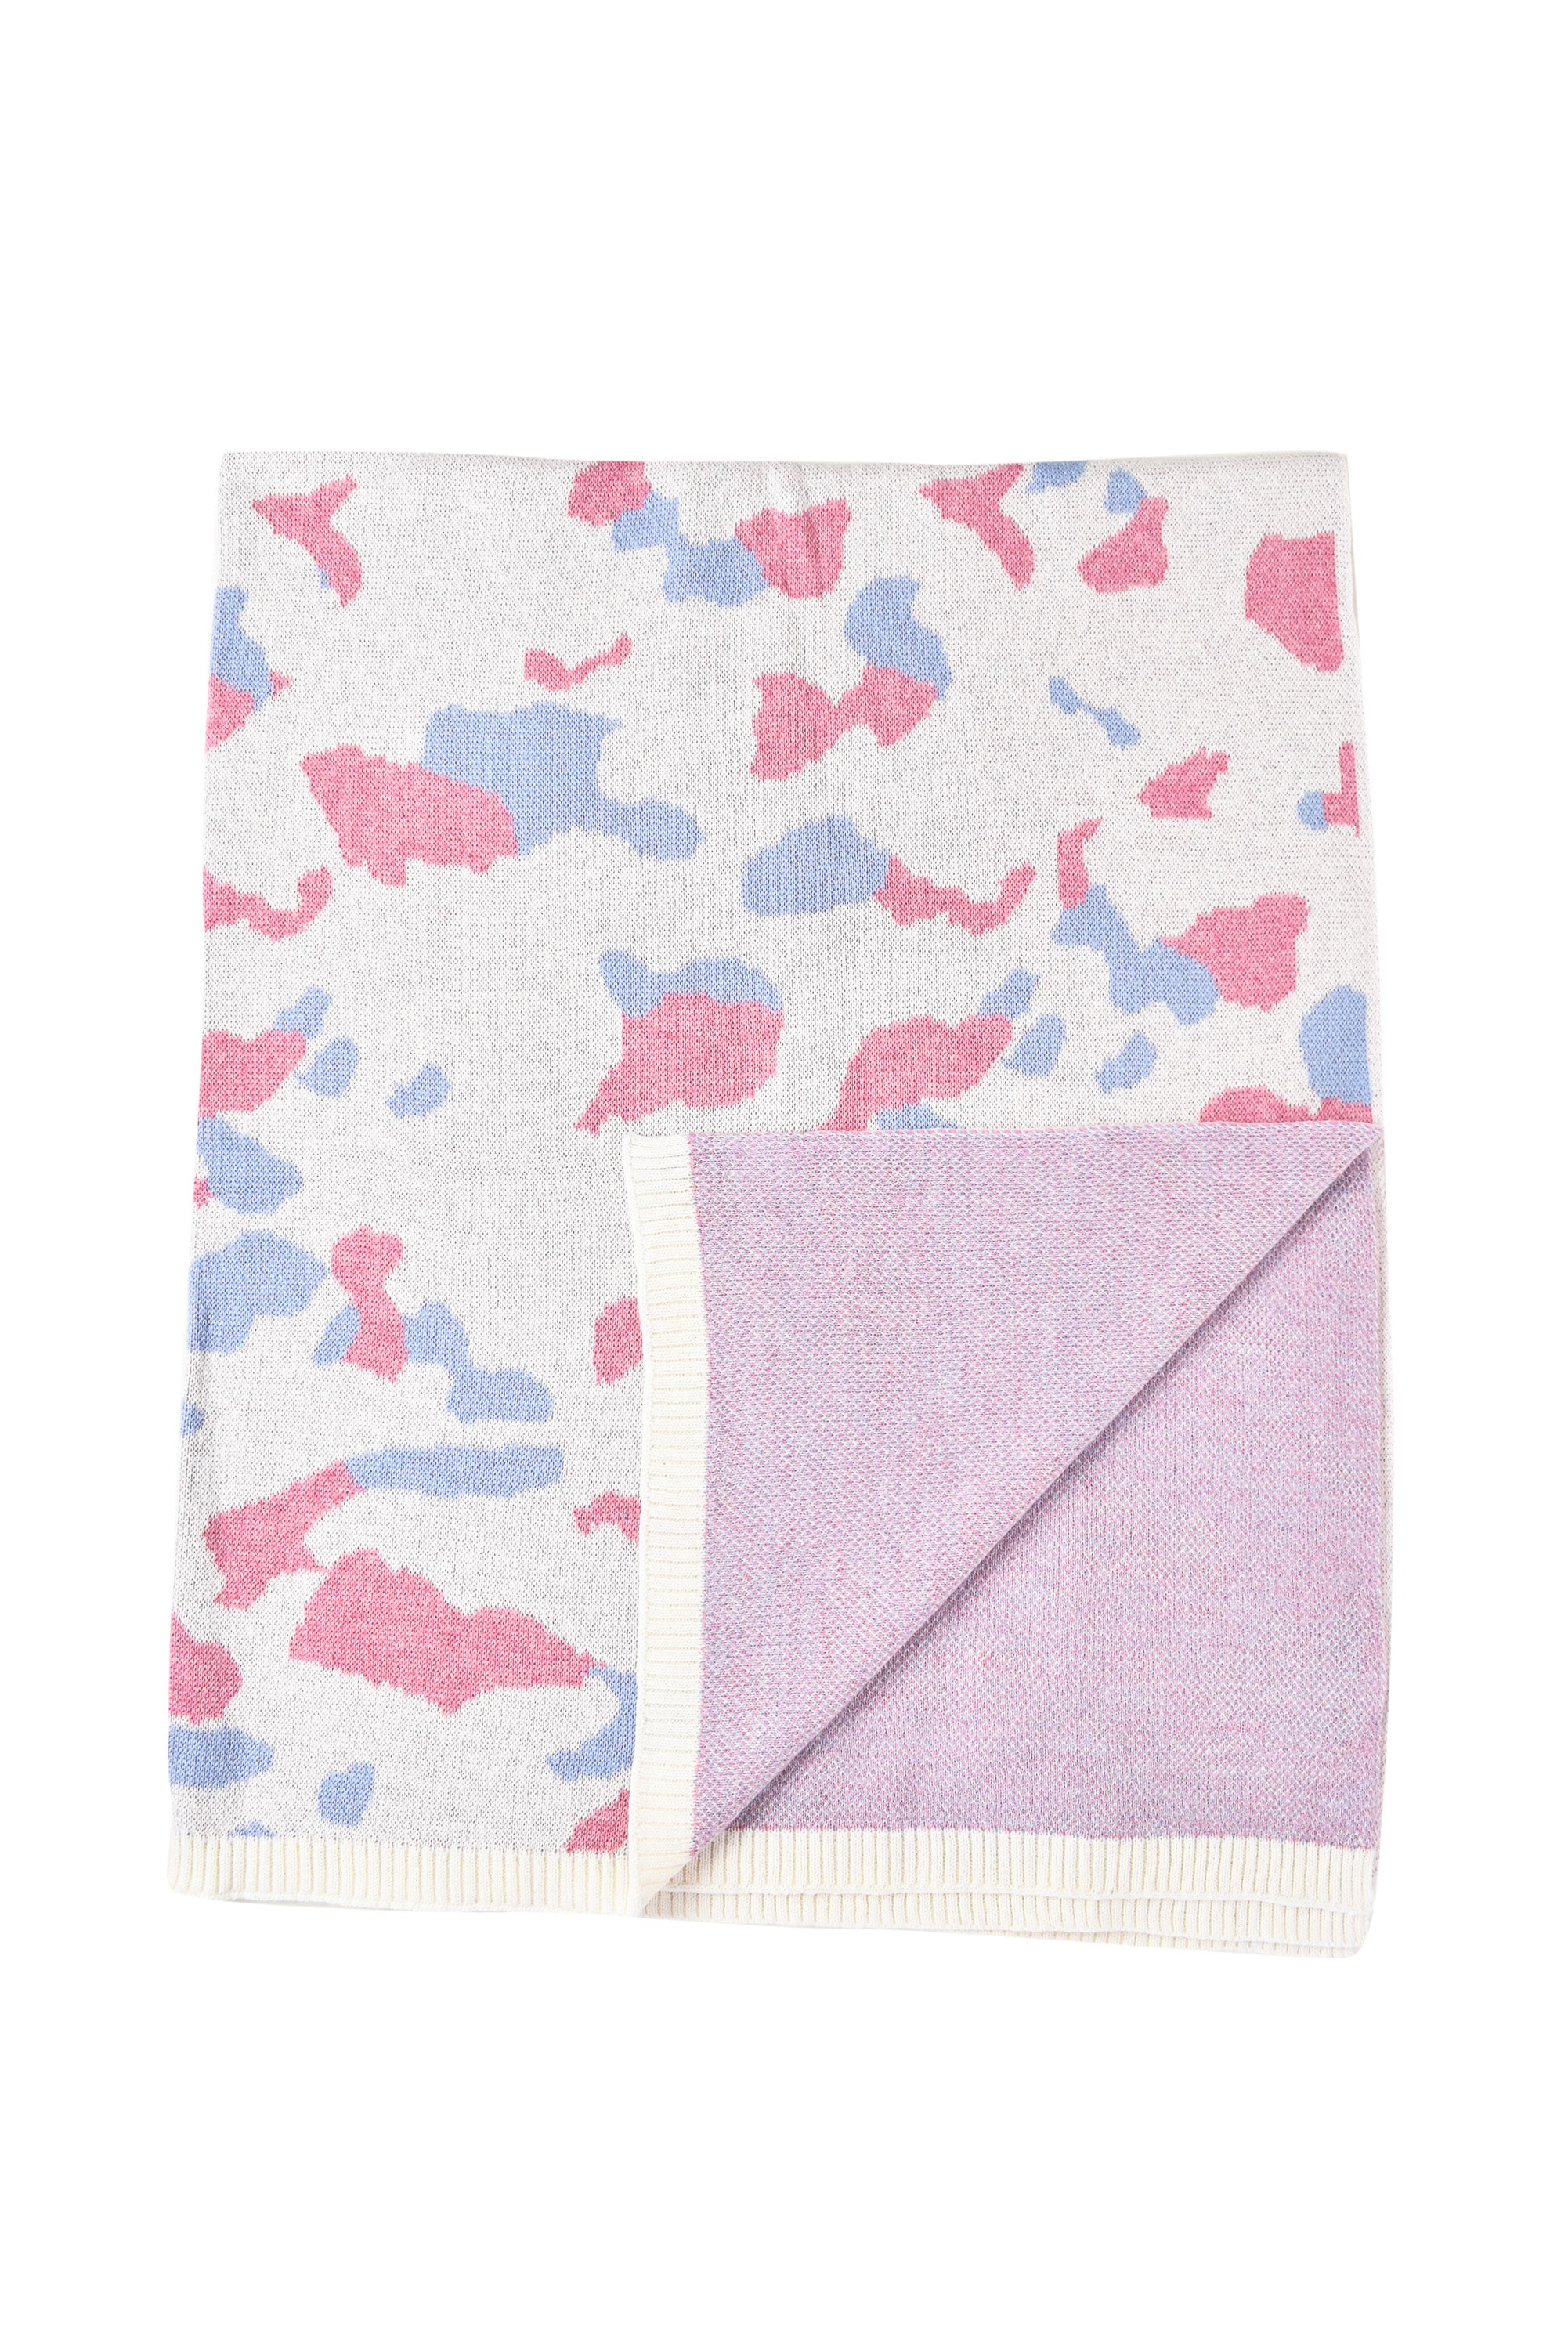 10007569 Atelier Child Baby ~ Blanket O/S at Retykle